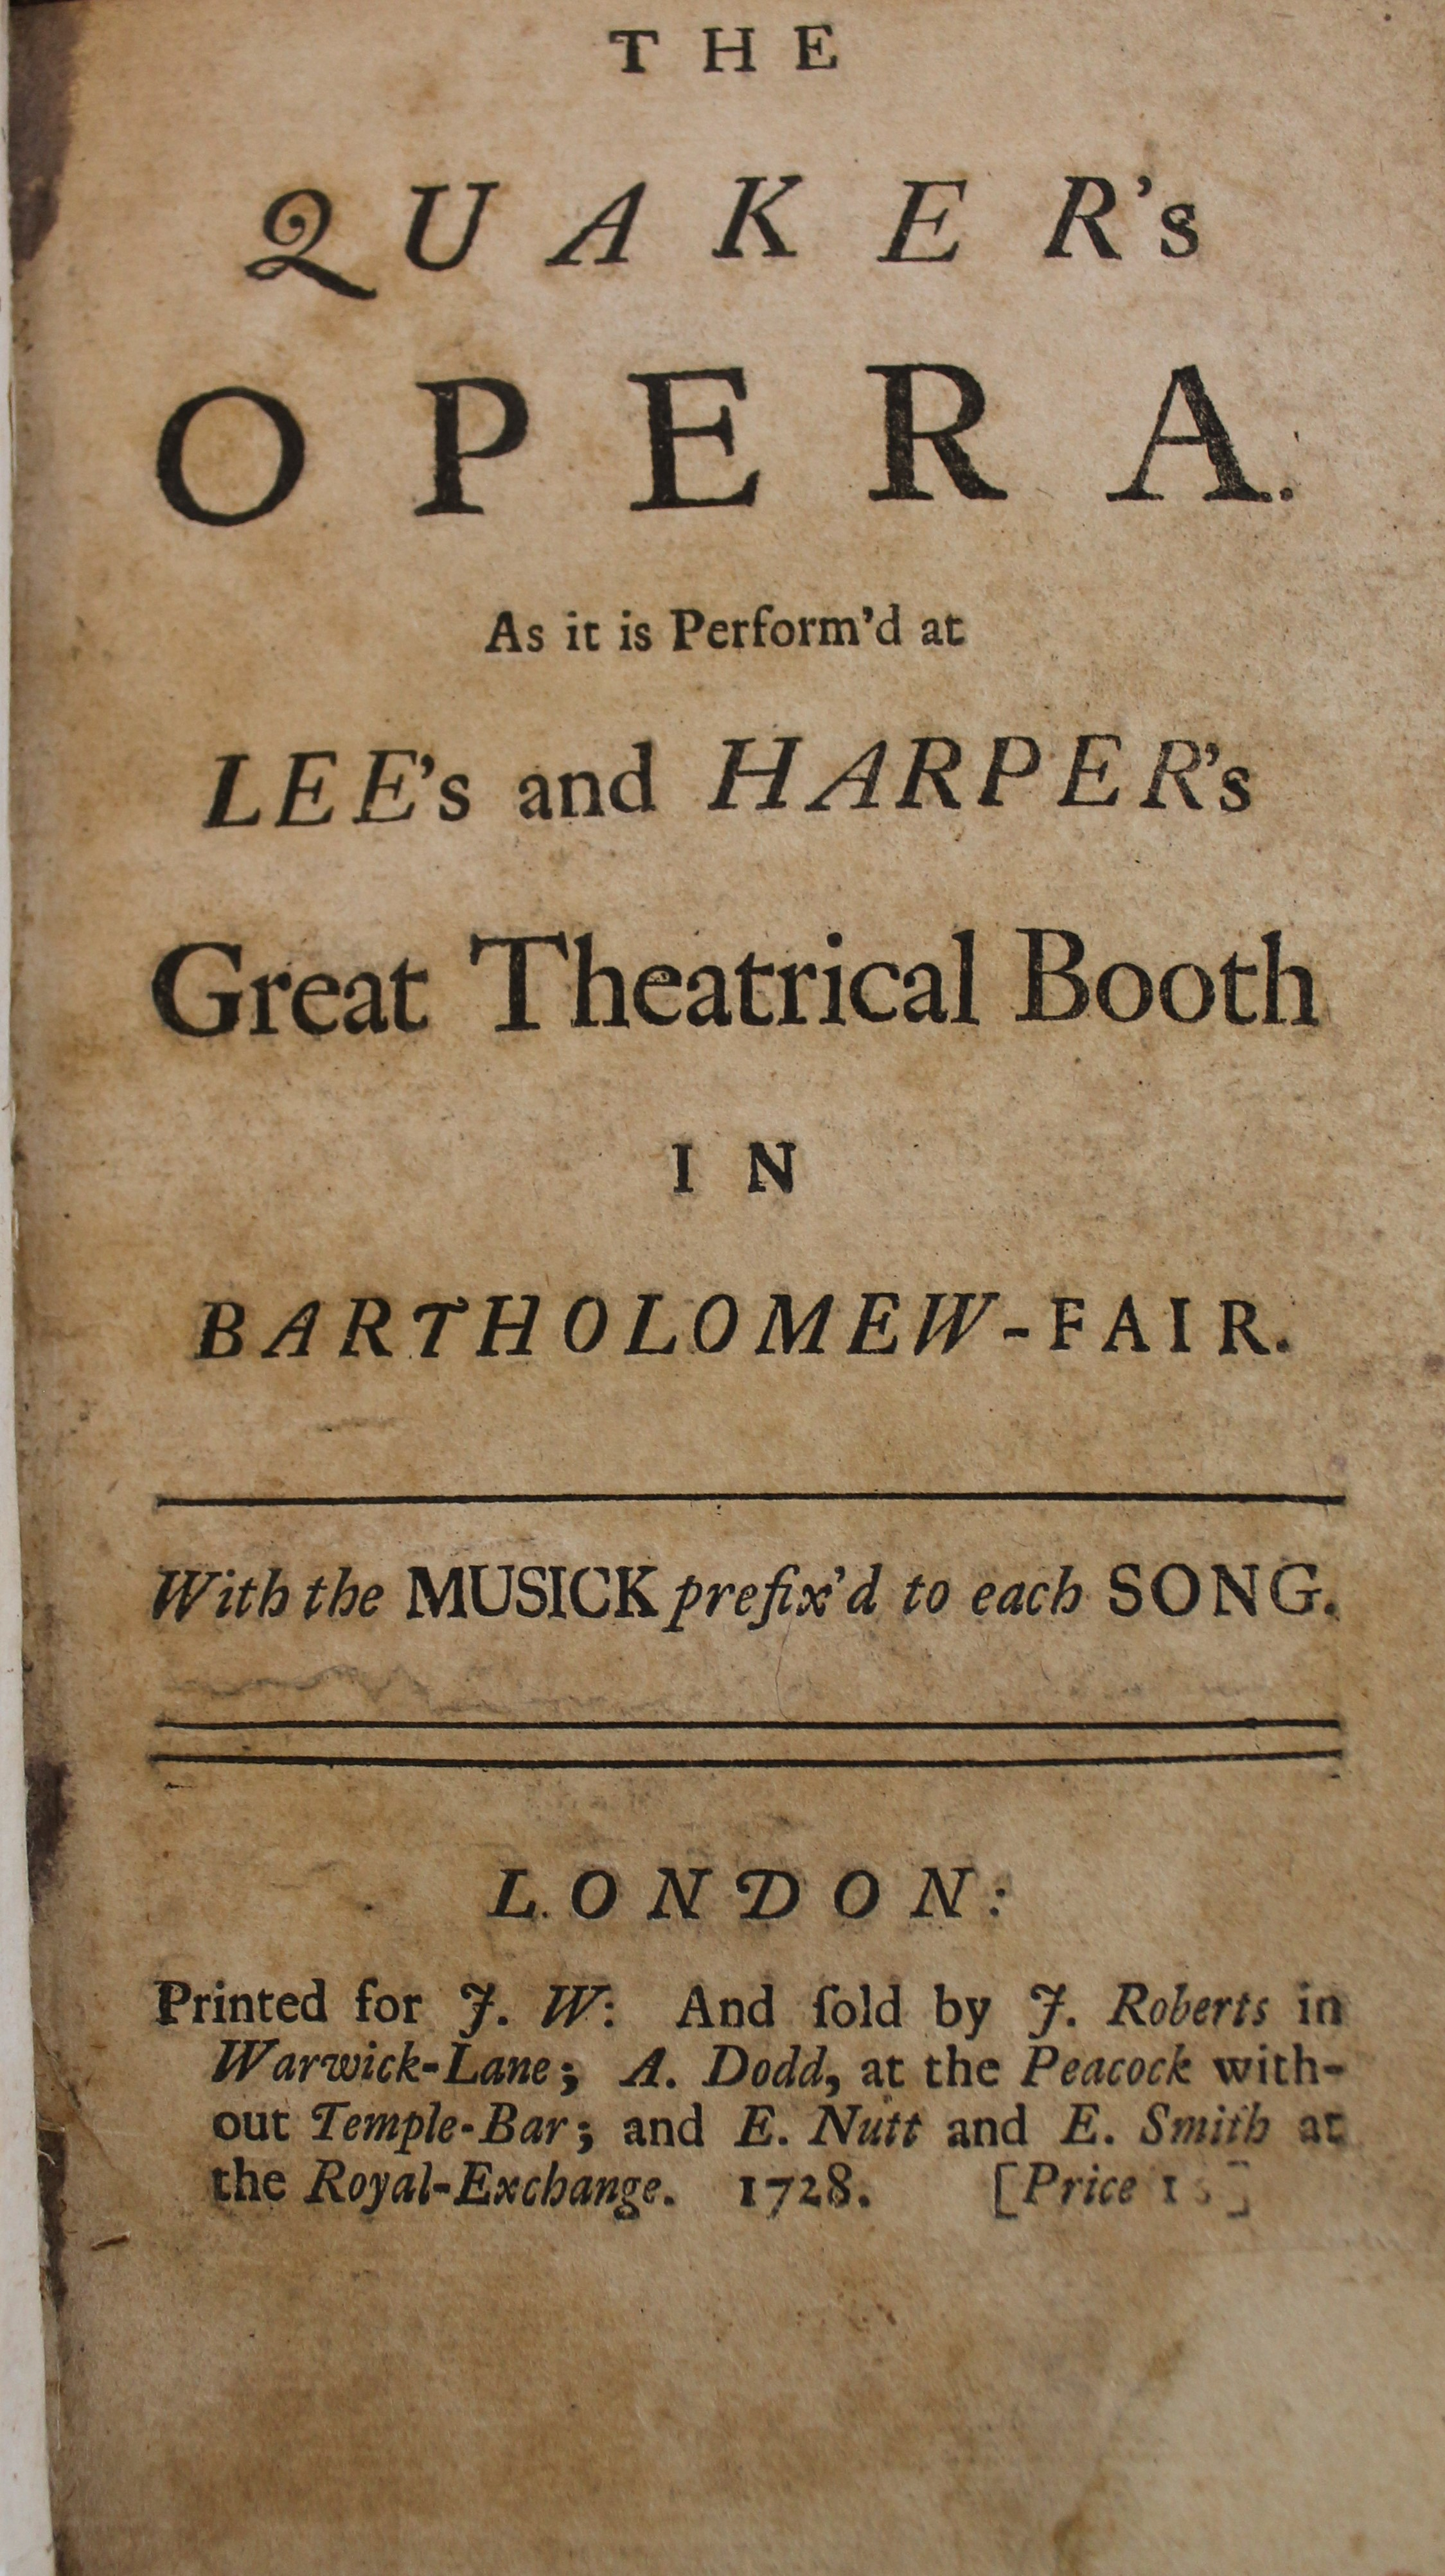 The Quaker's Opera by Thomas Walker (1728)